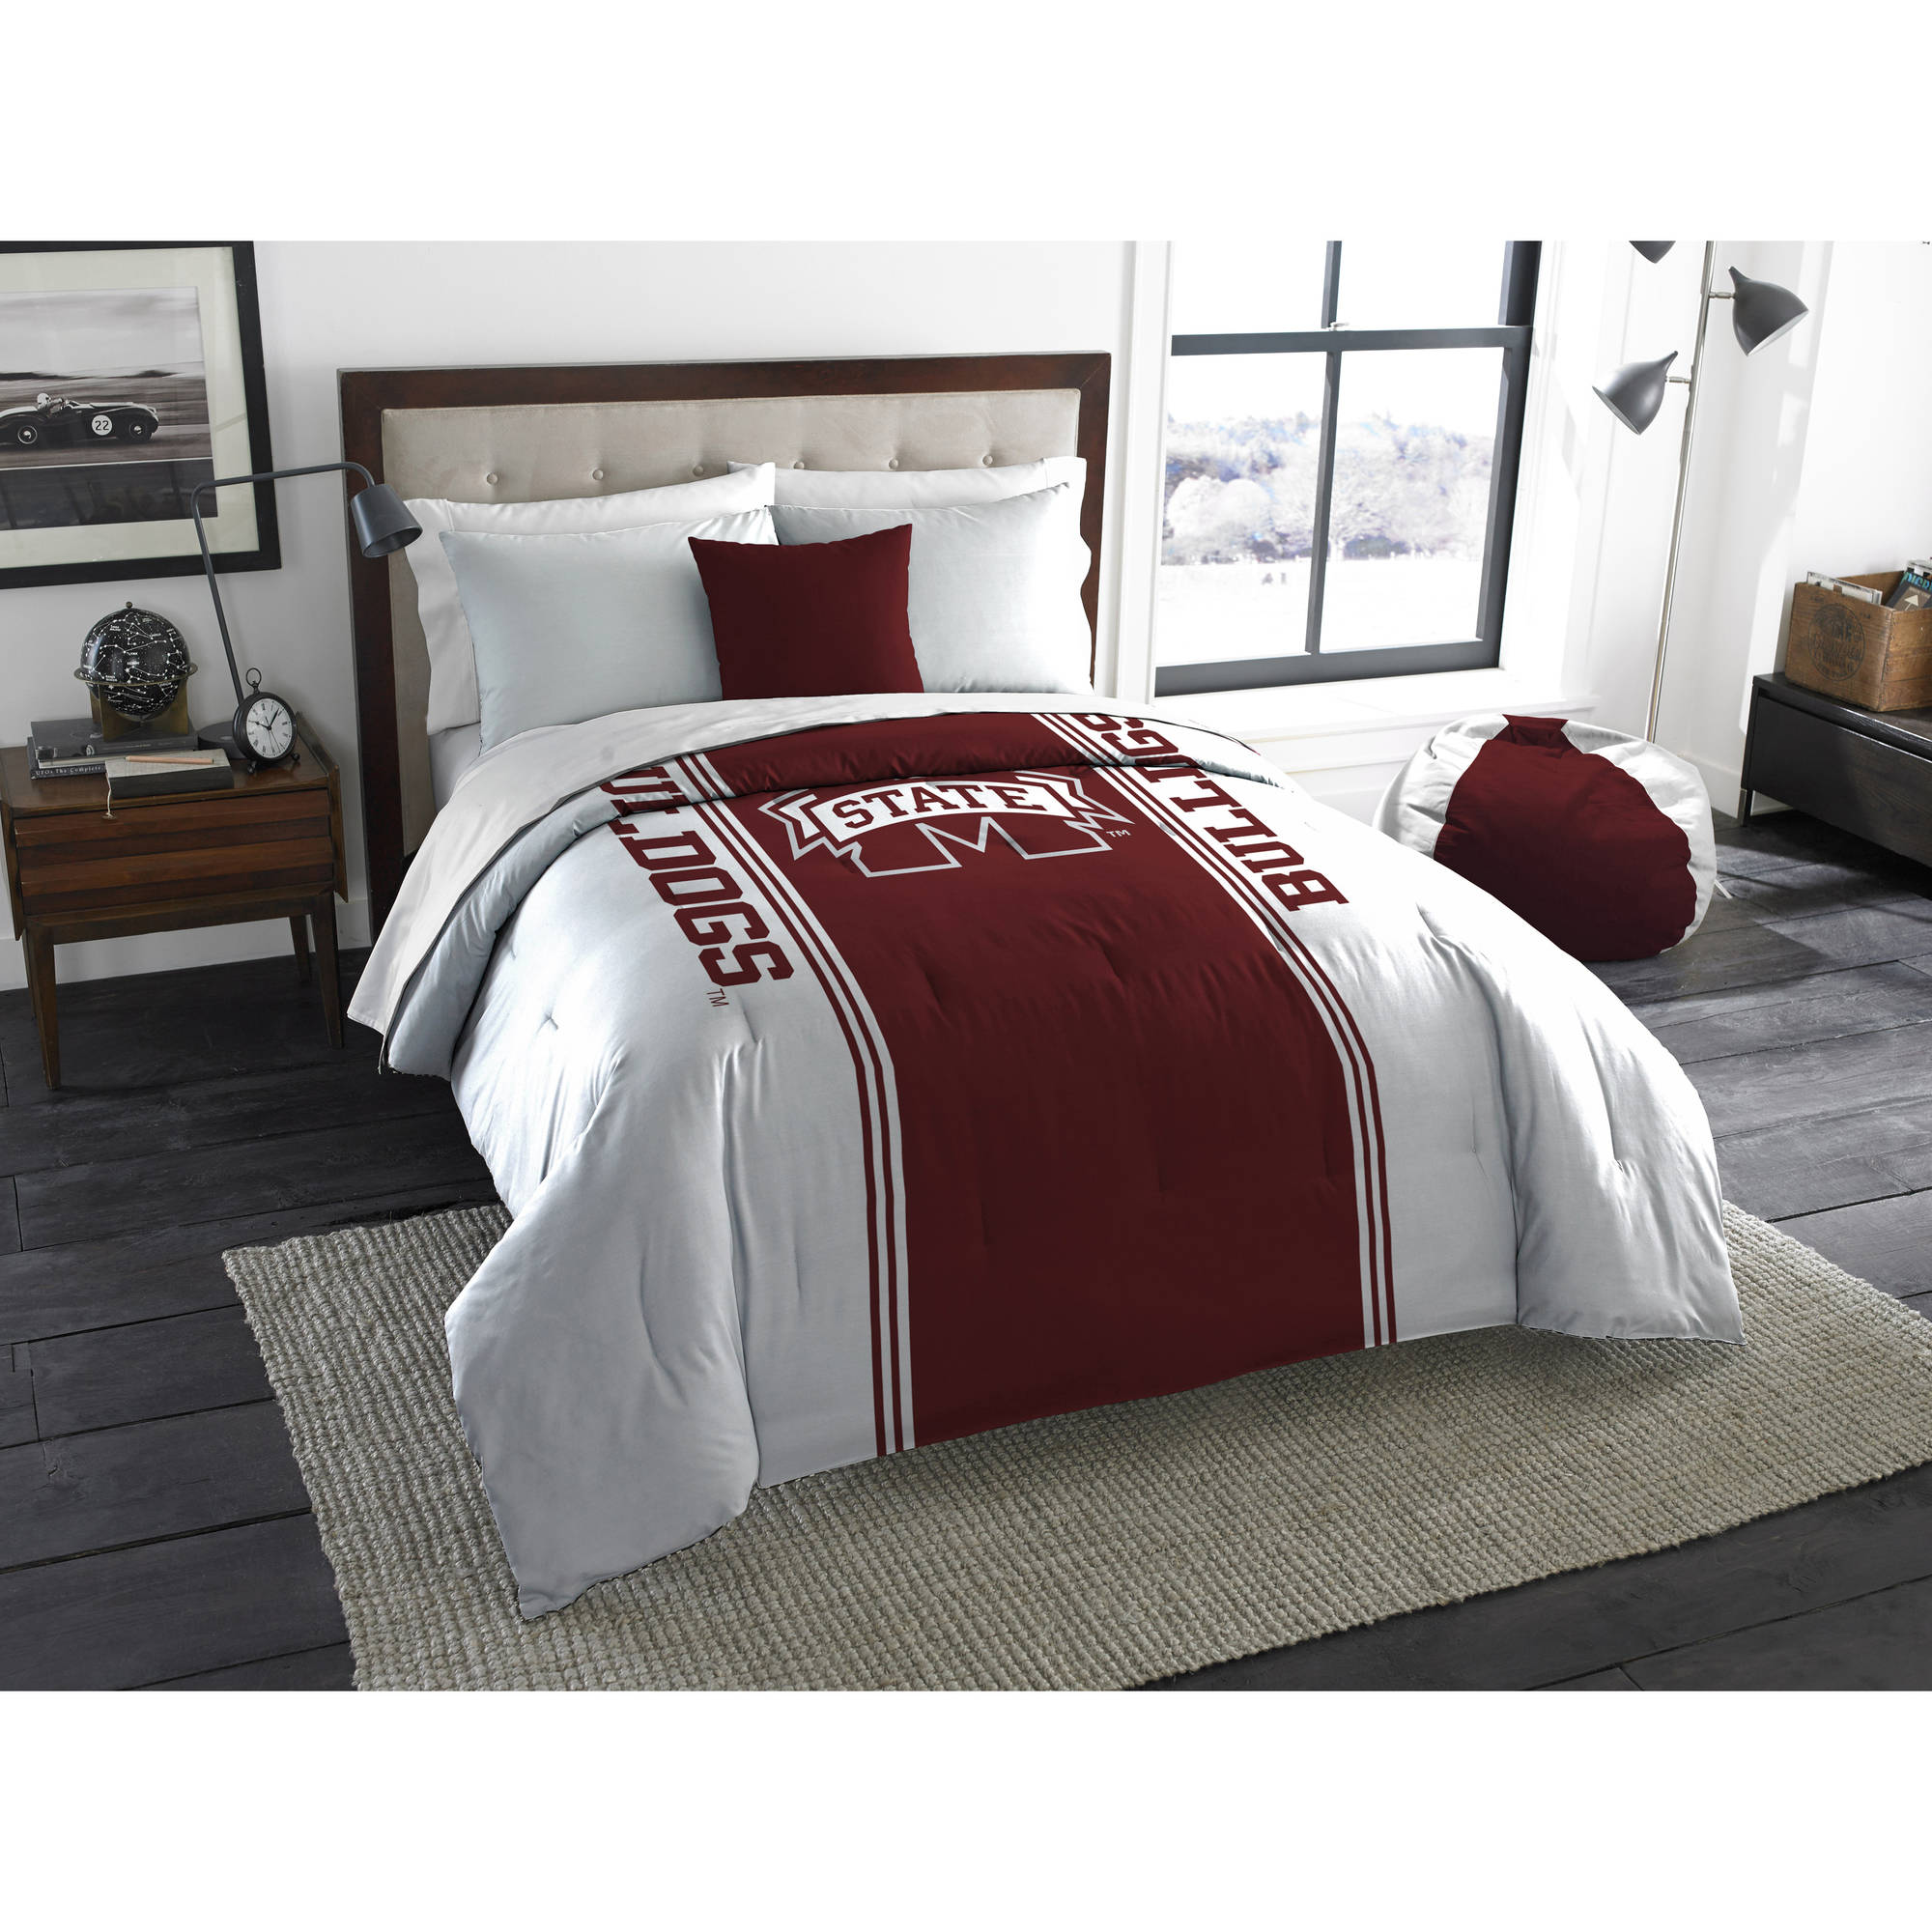 "NCAA Mississippi State Bulldogs ""Mascot"" Twin/Full Bedding Comforter"